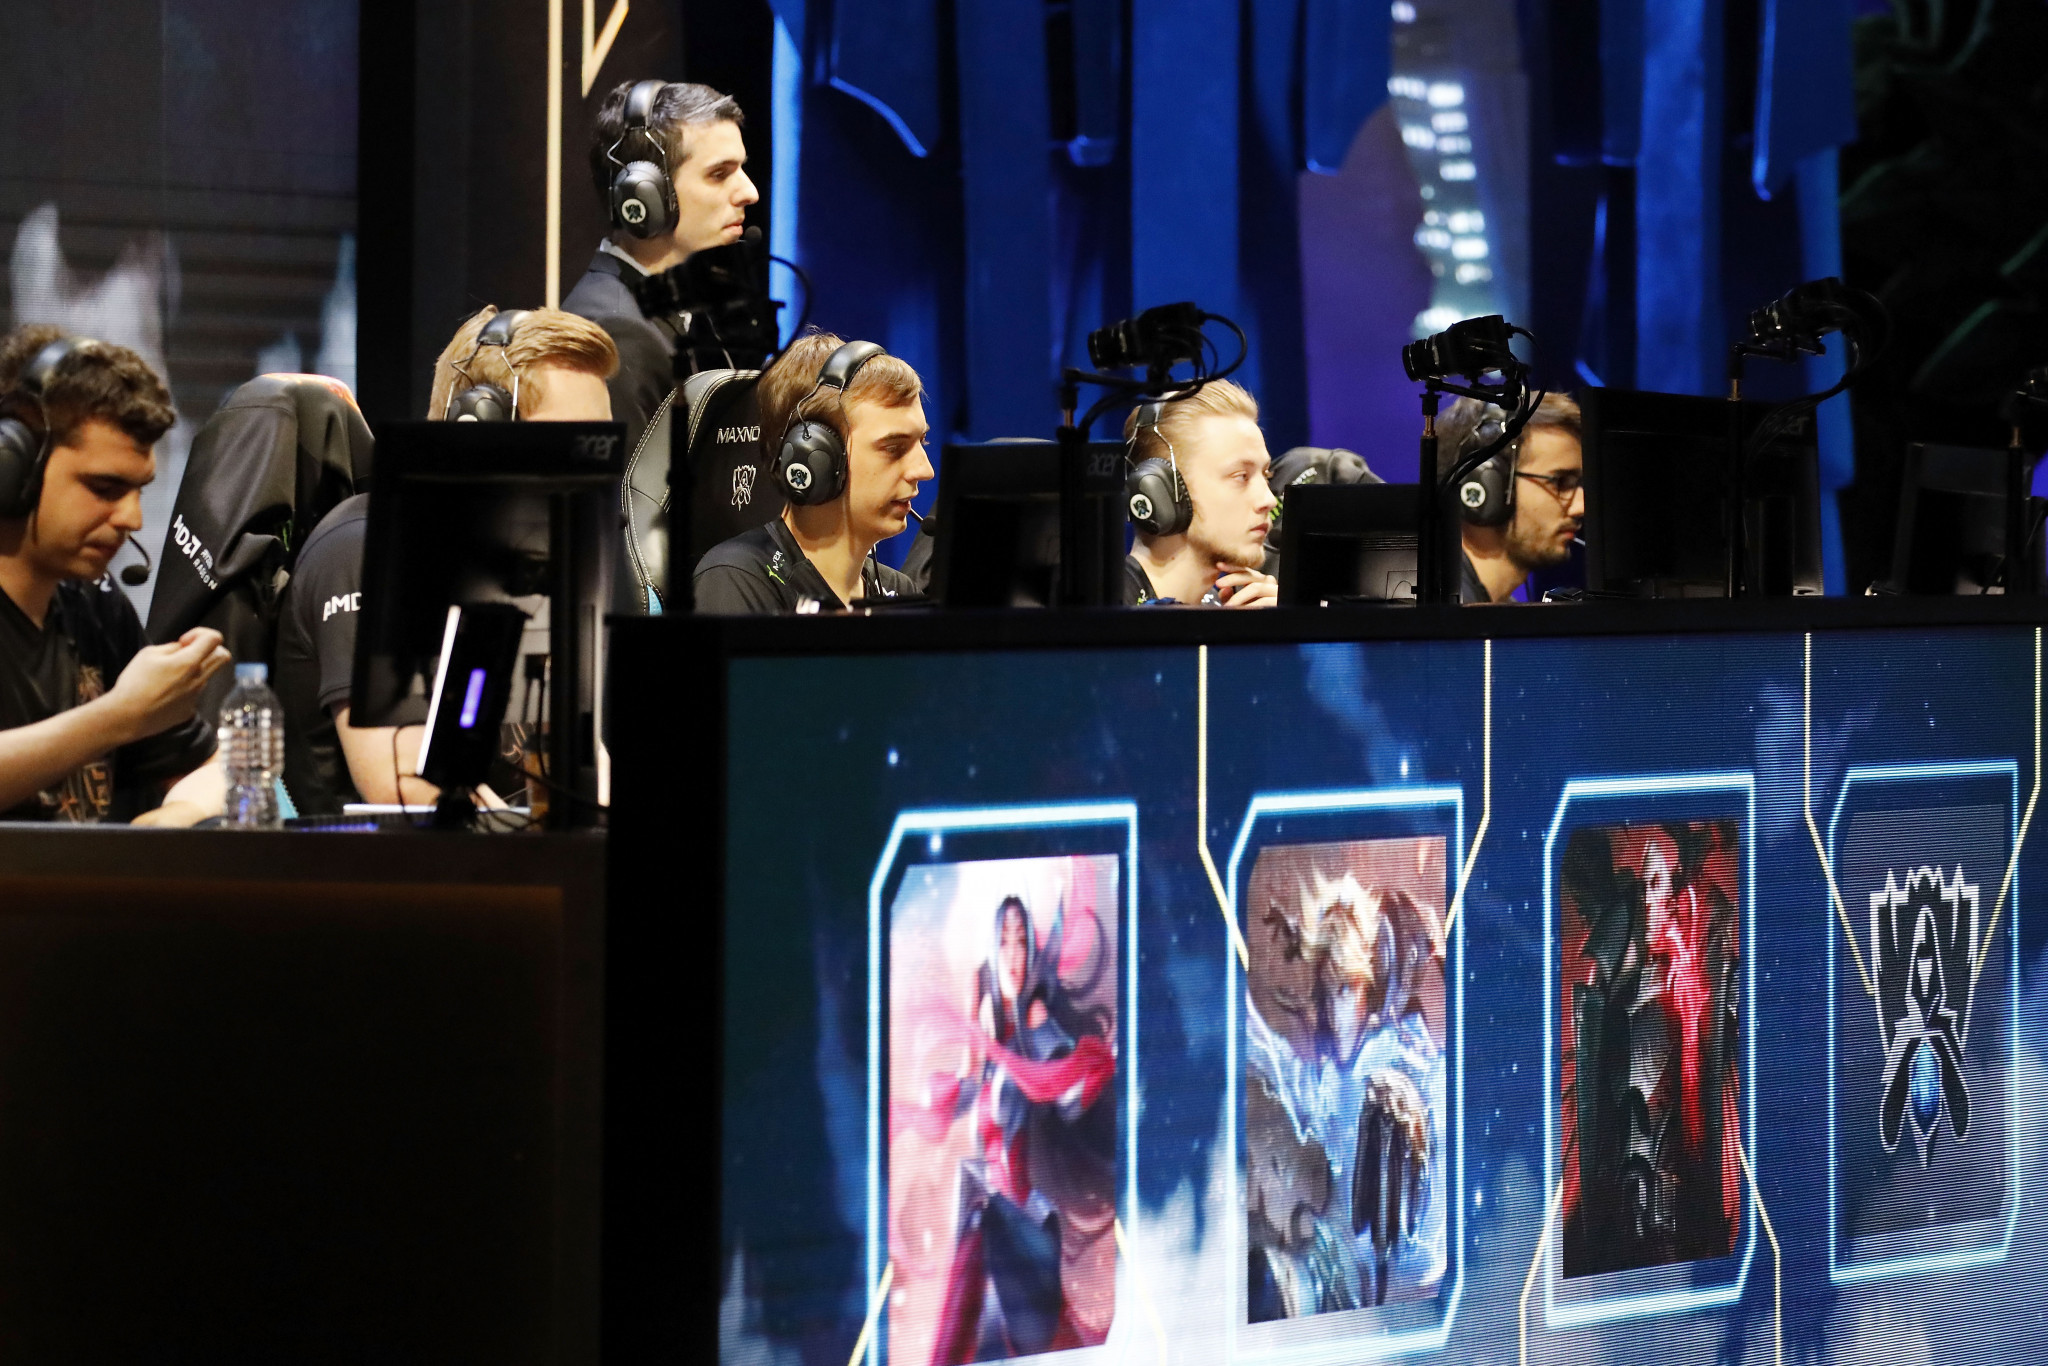 Esports could become an official medal event at the 2022 Asian Games ©Getty Images